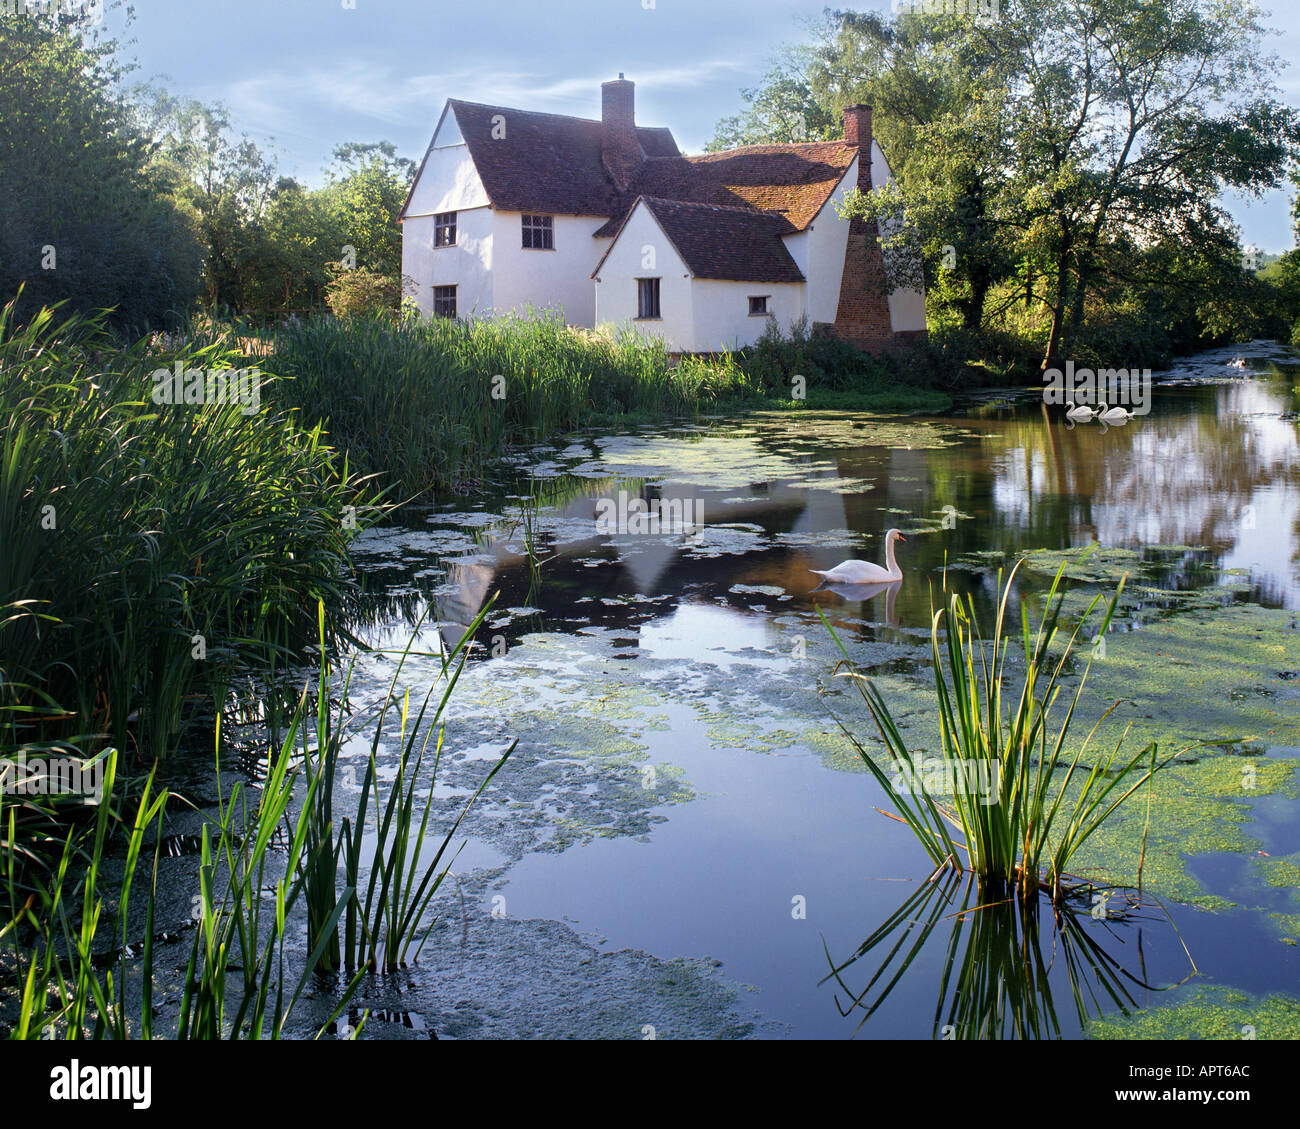 GB - SUFFOLK: Willy Lotts Cottage near Manningtree - Stock Image